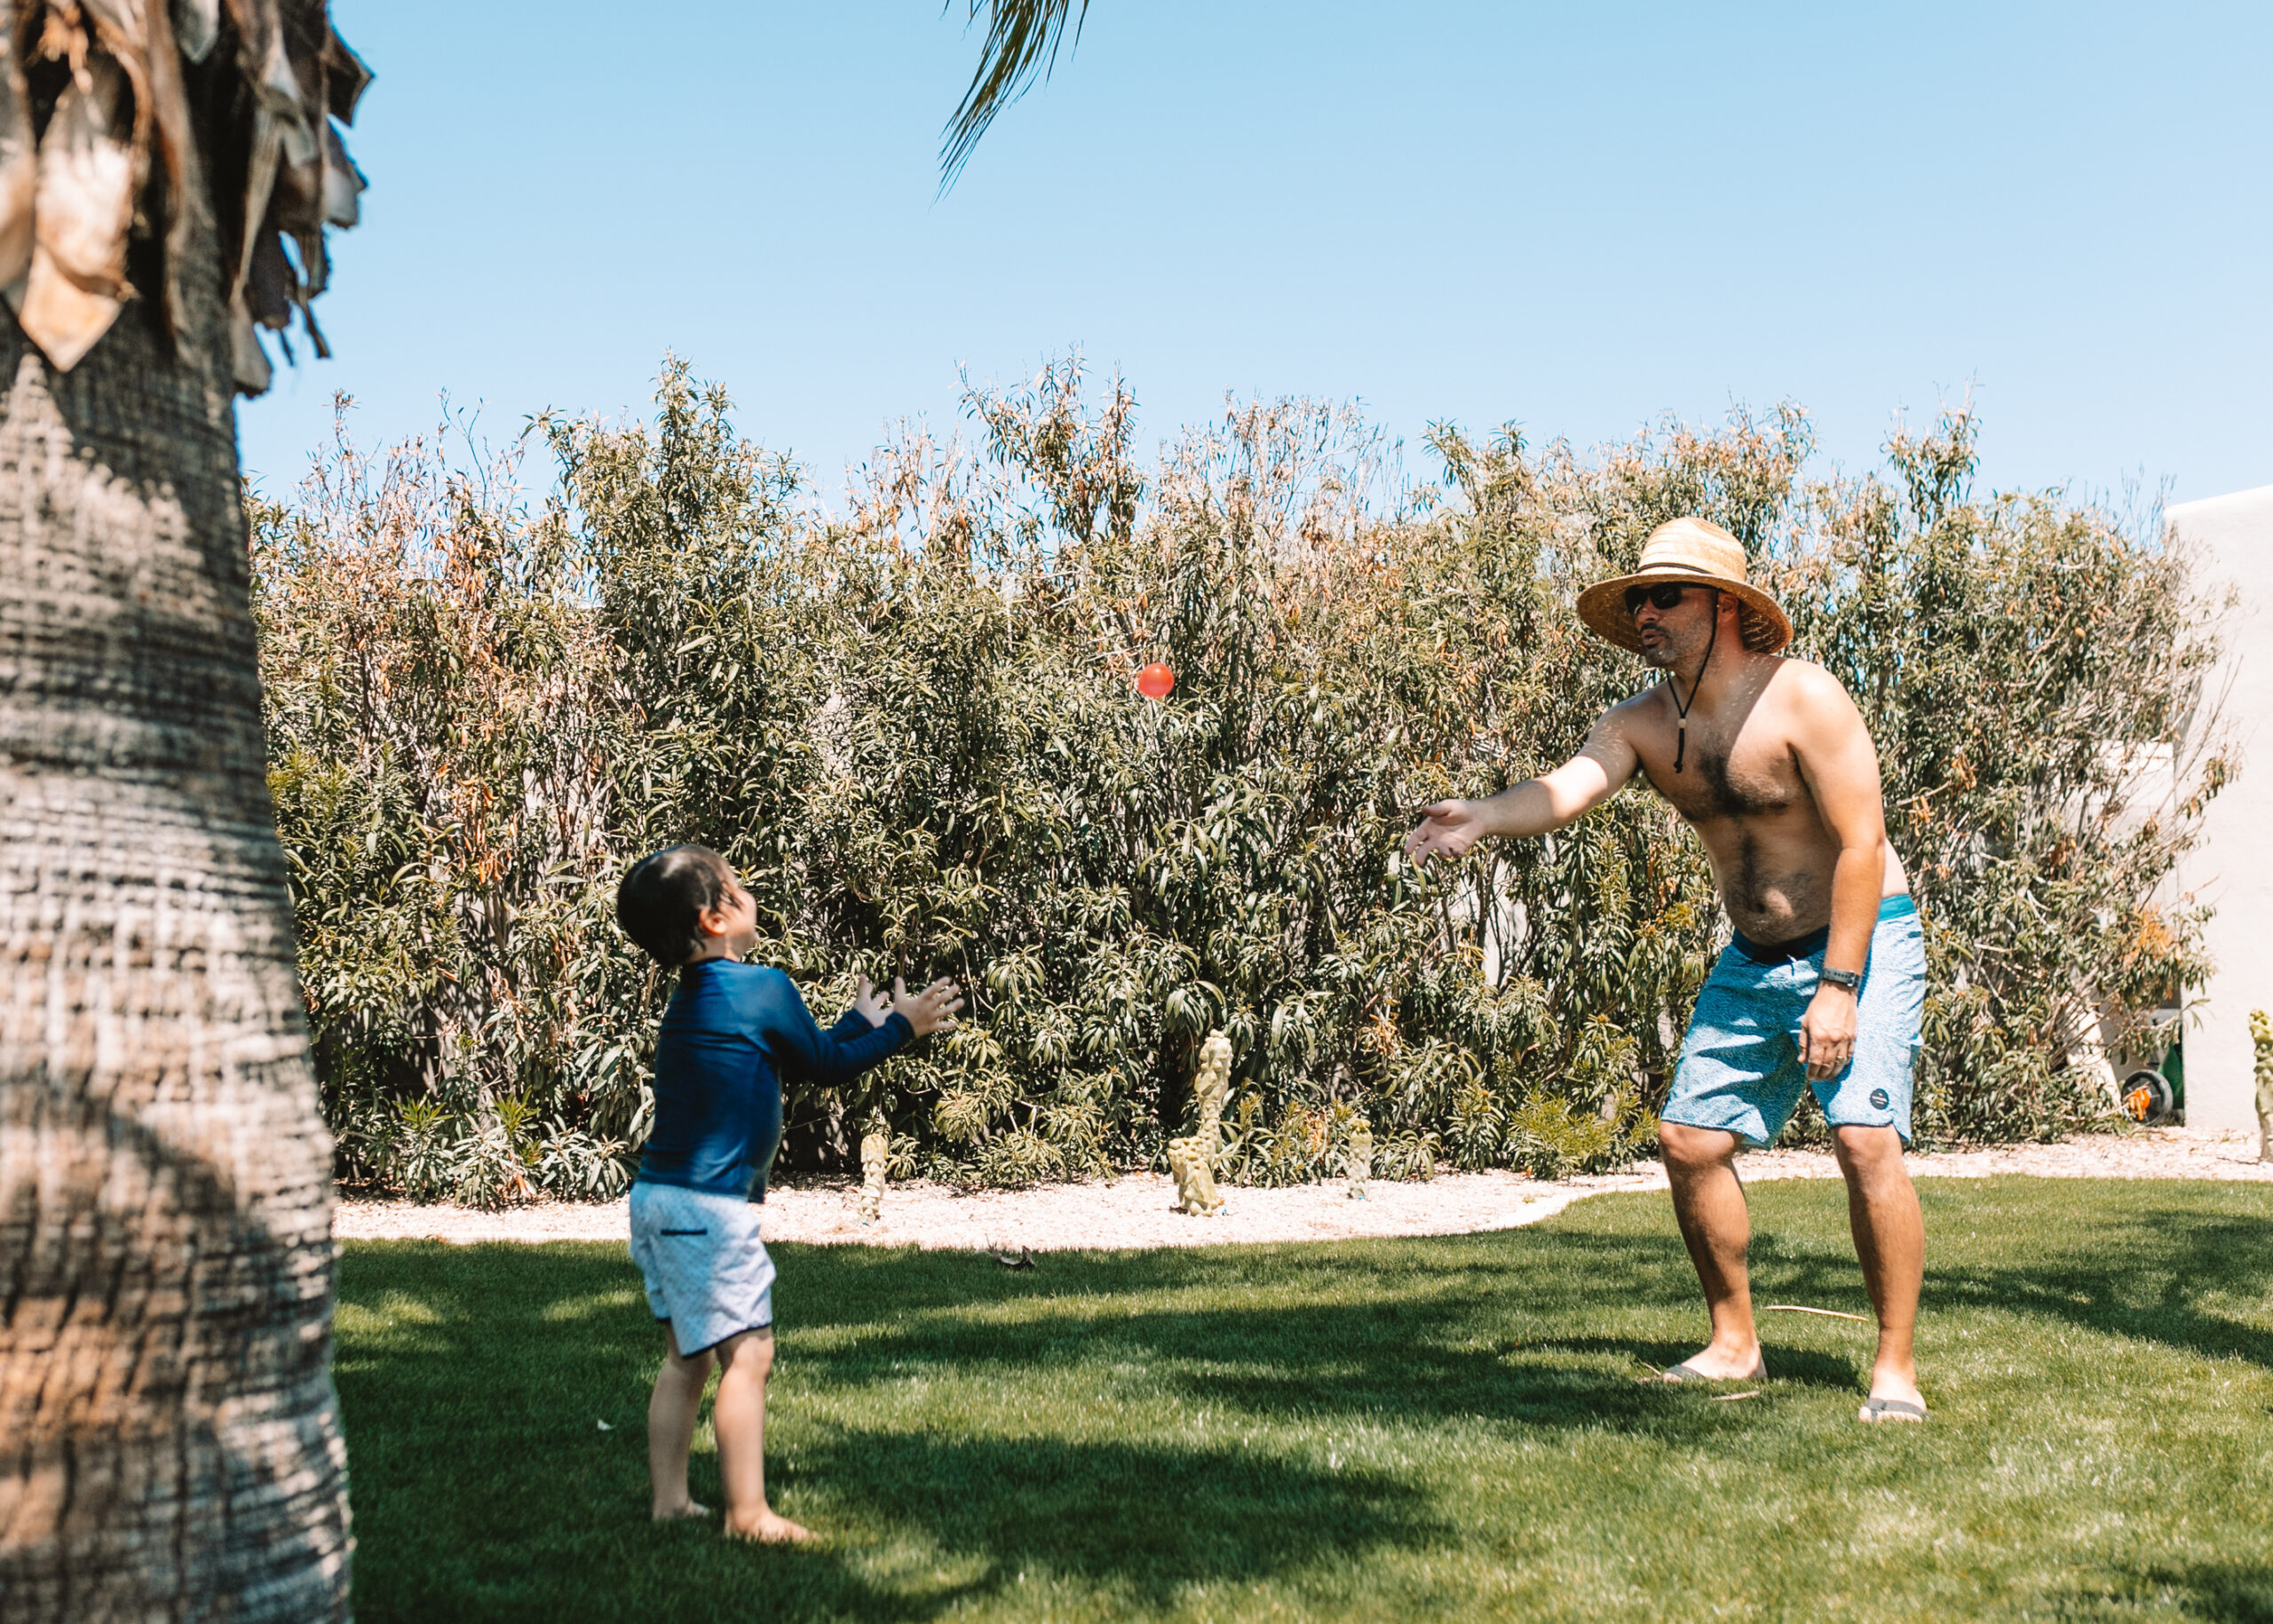 find a partner and try a water balloon toss! #backyardwaterplay #funinthesun #quarantinelife